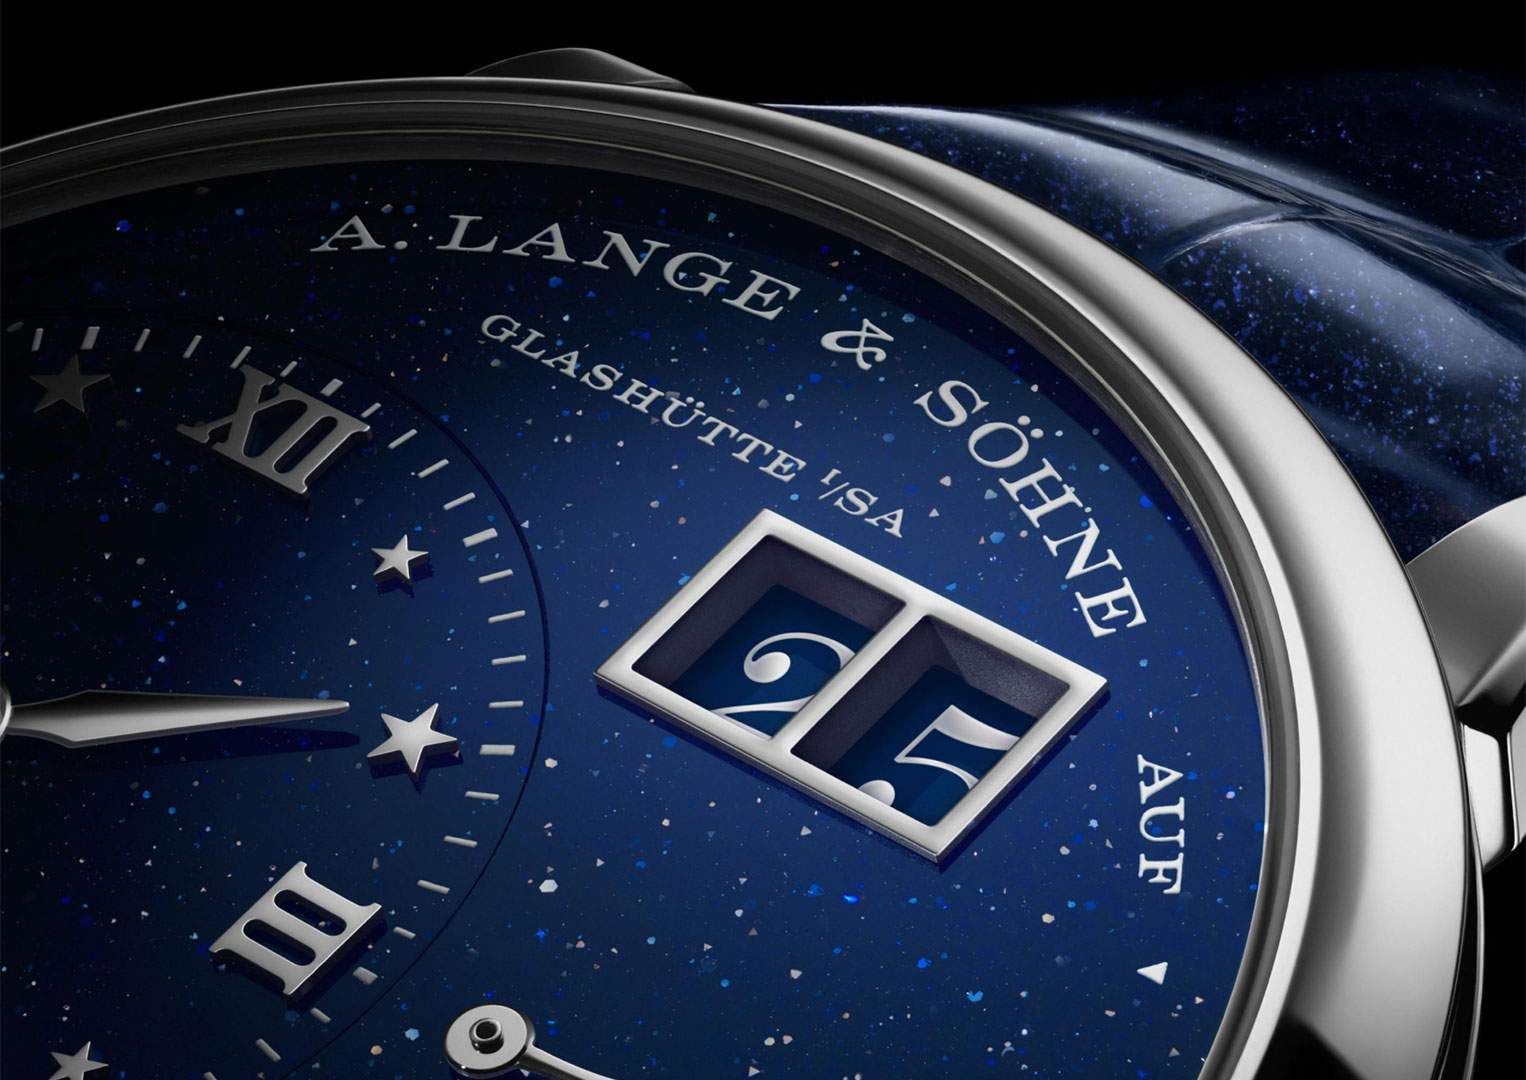 A. Lange & Sohne pays its respects to its founder by invariably using his birthdate